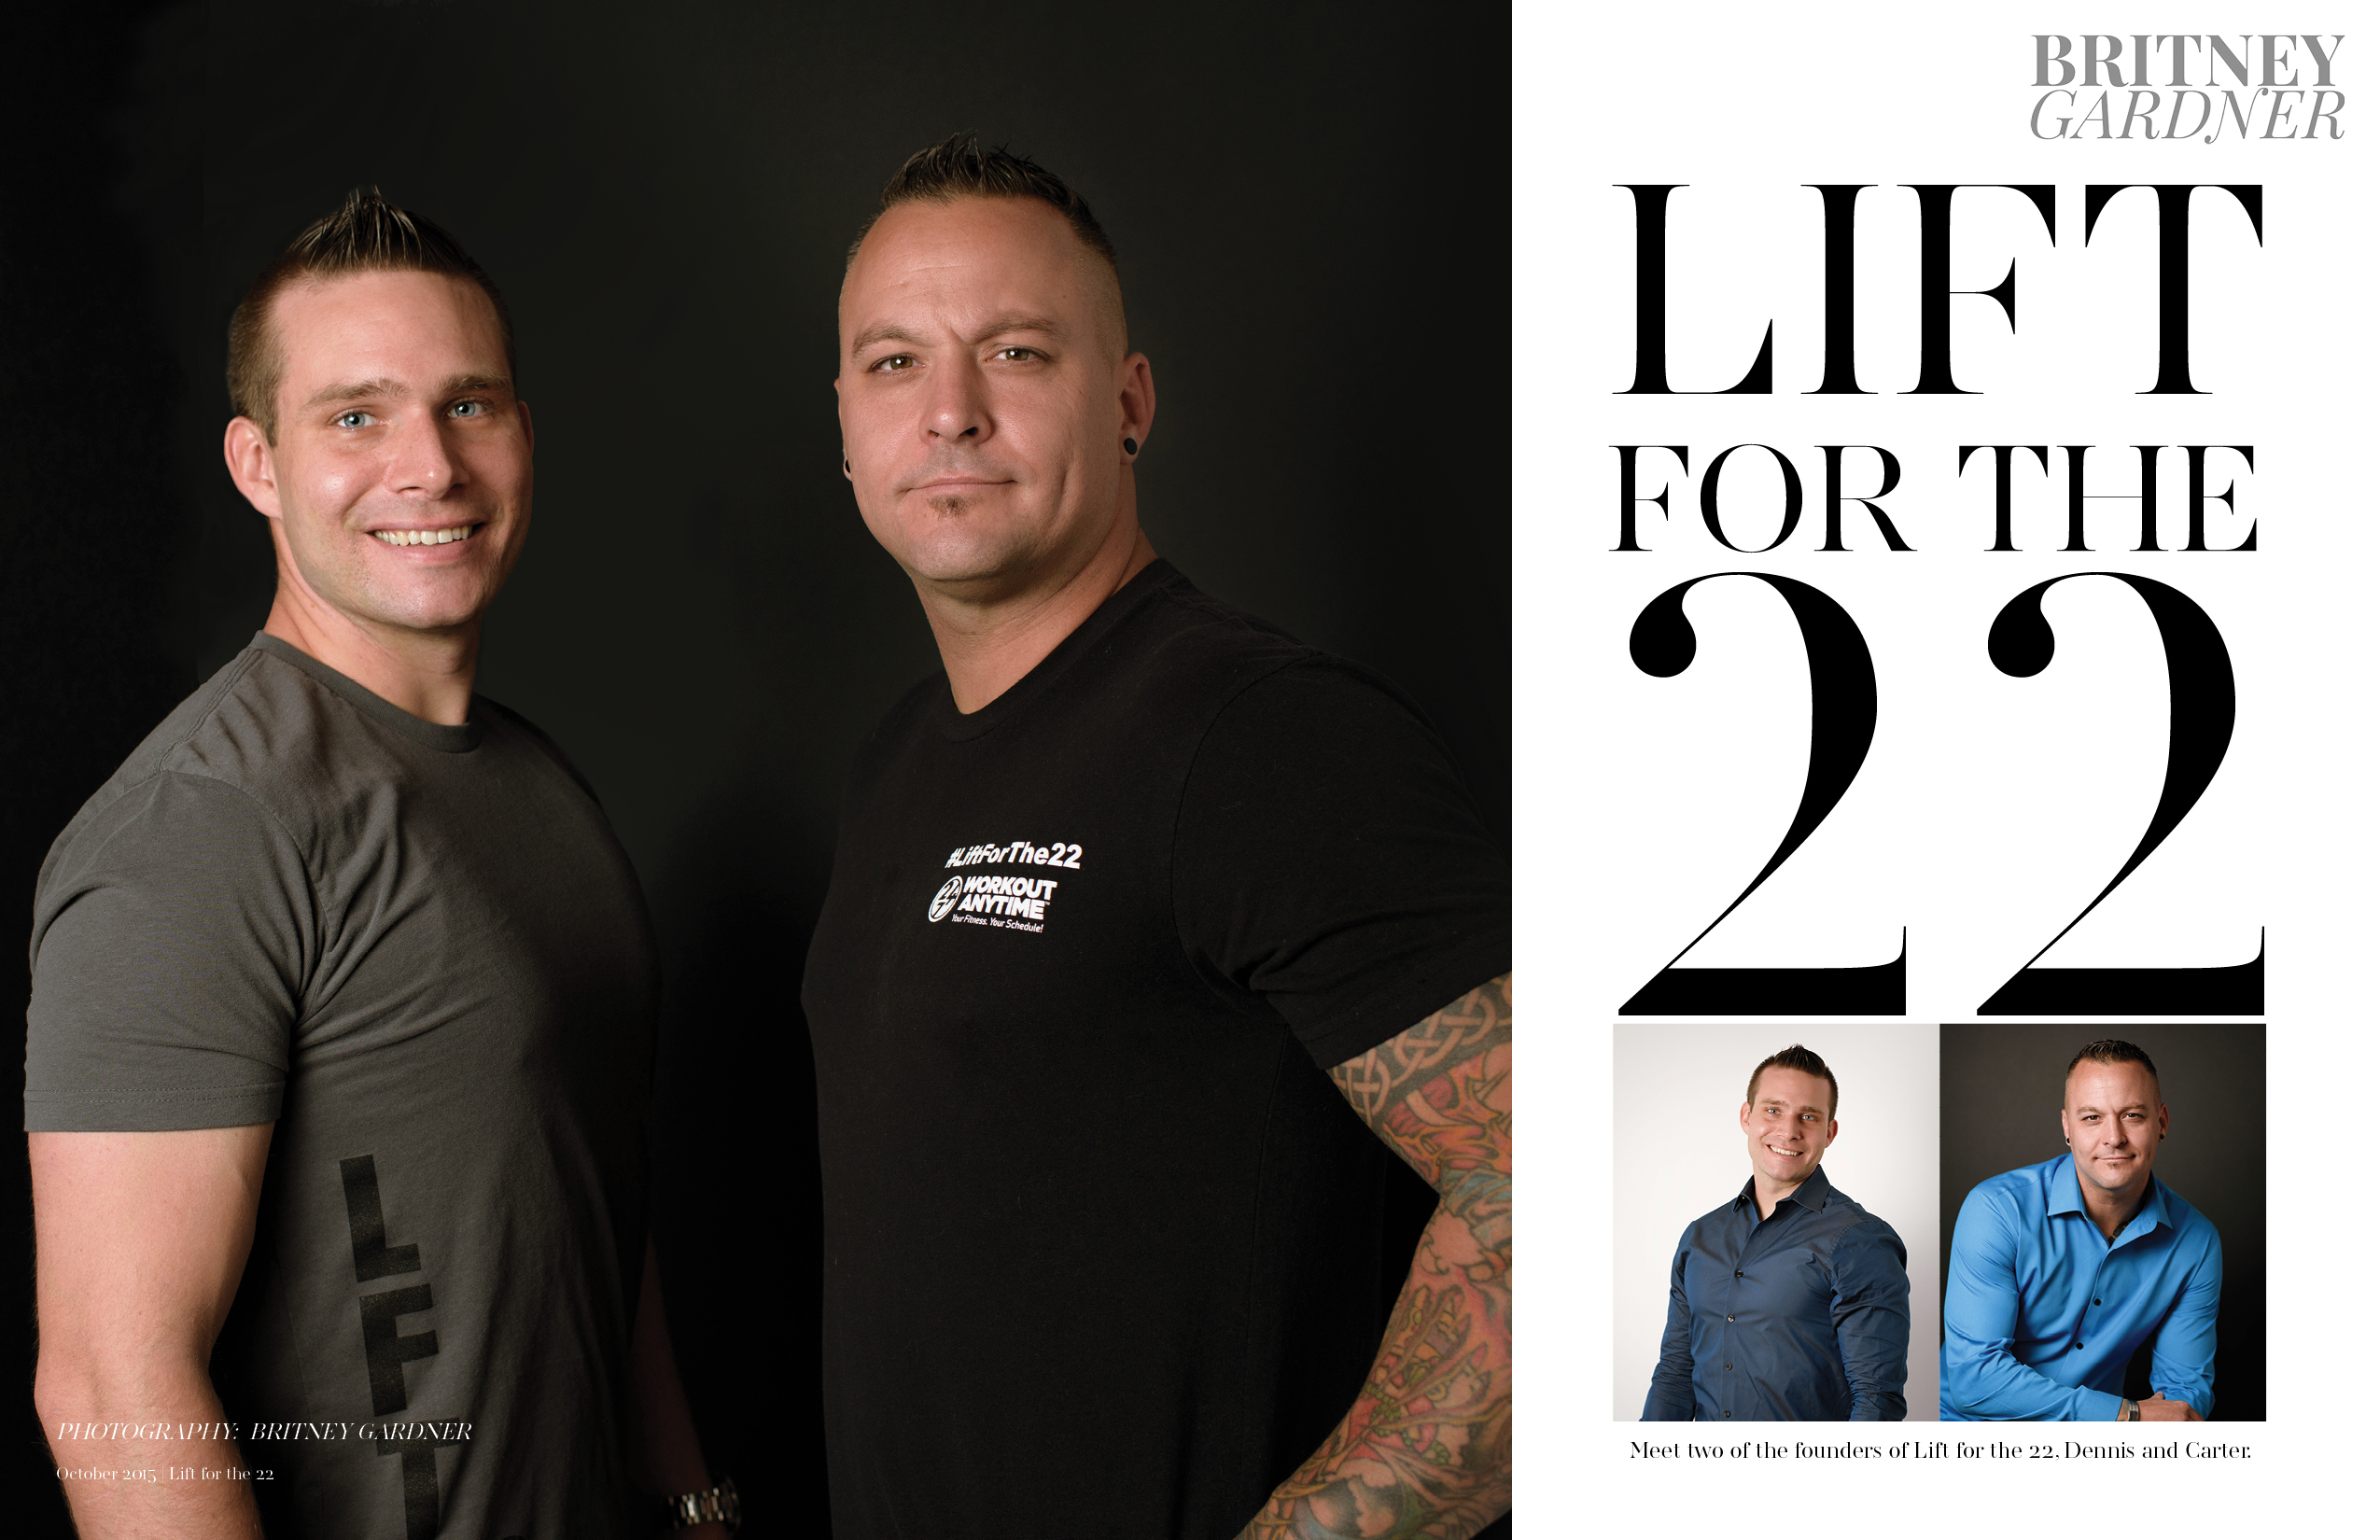 non-profit headshots for lift for the 22